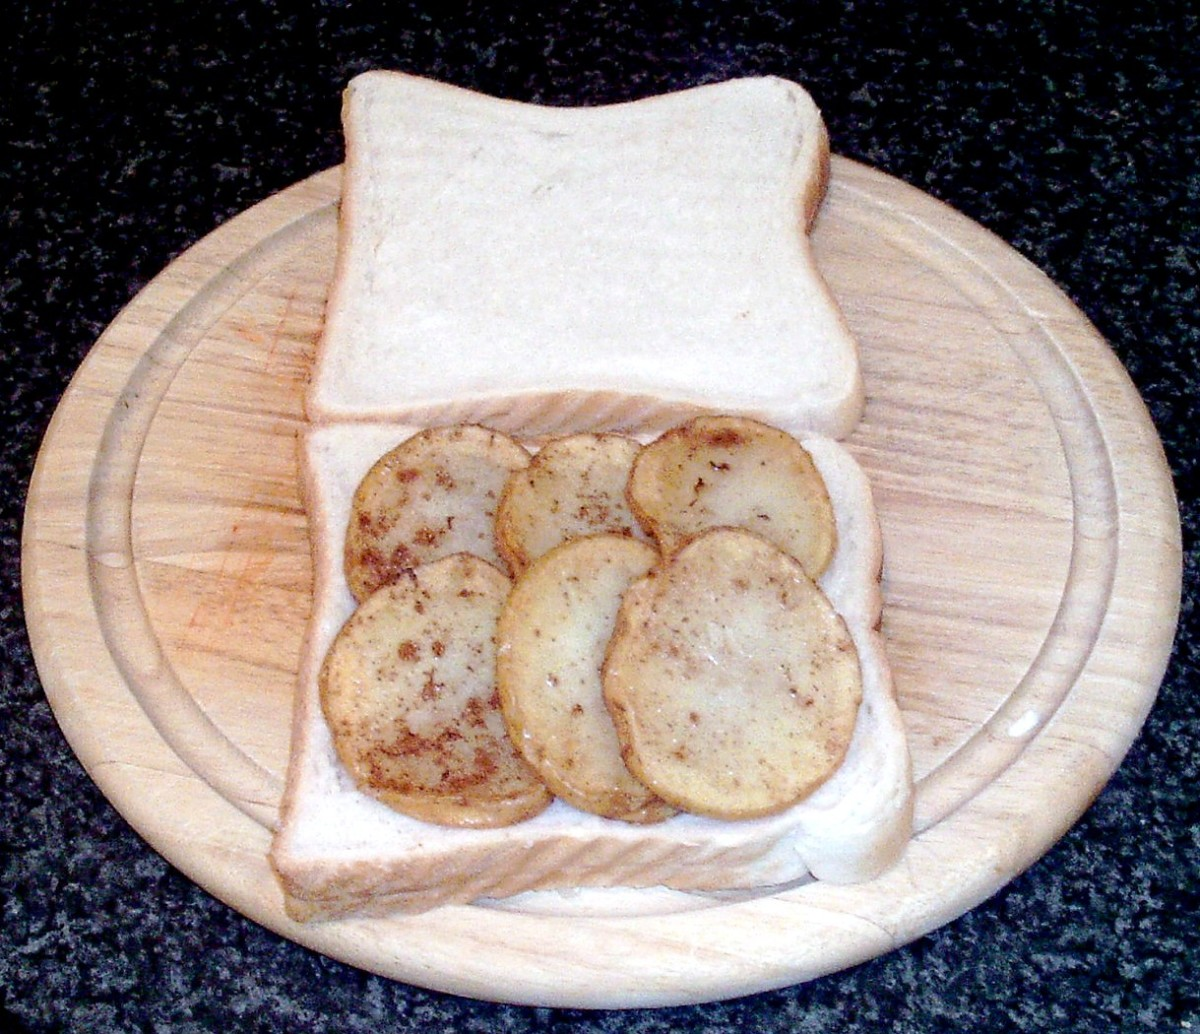 Potatoes are arranged on one slice of bread